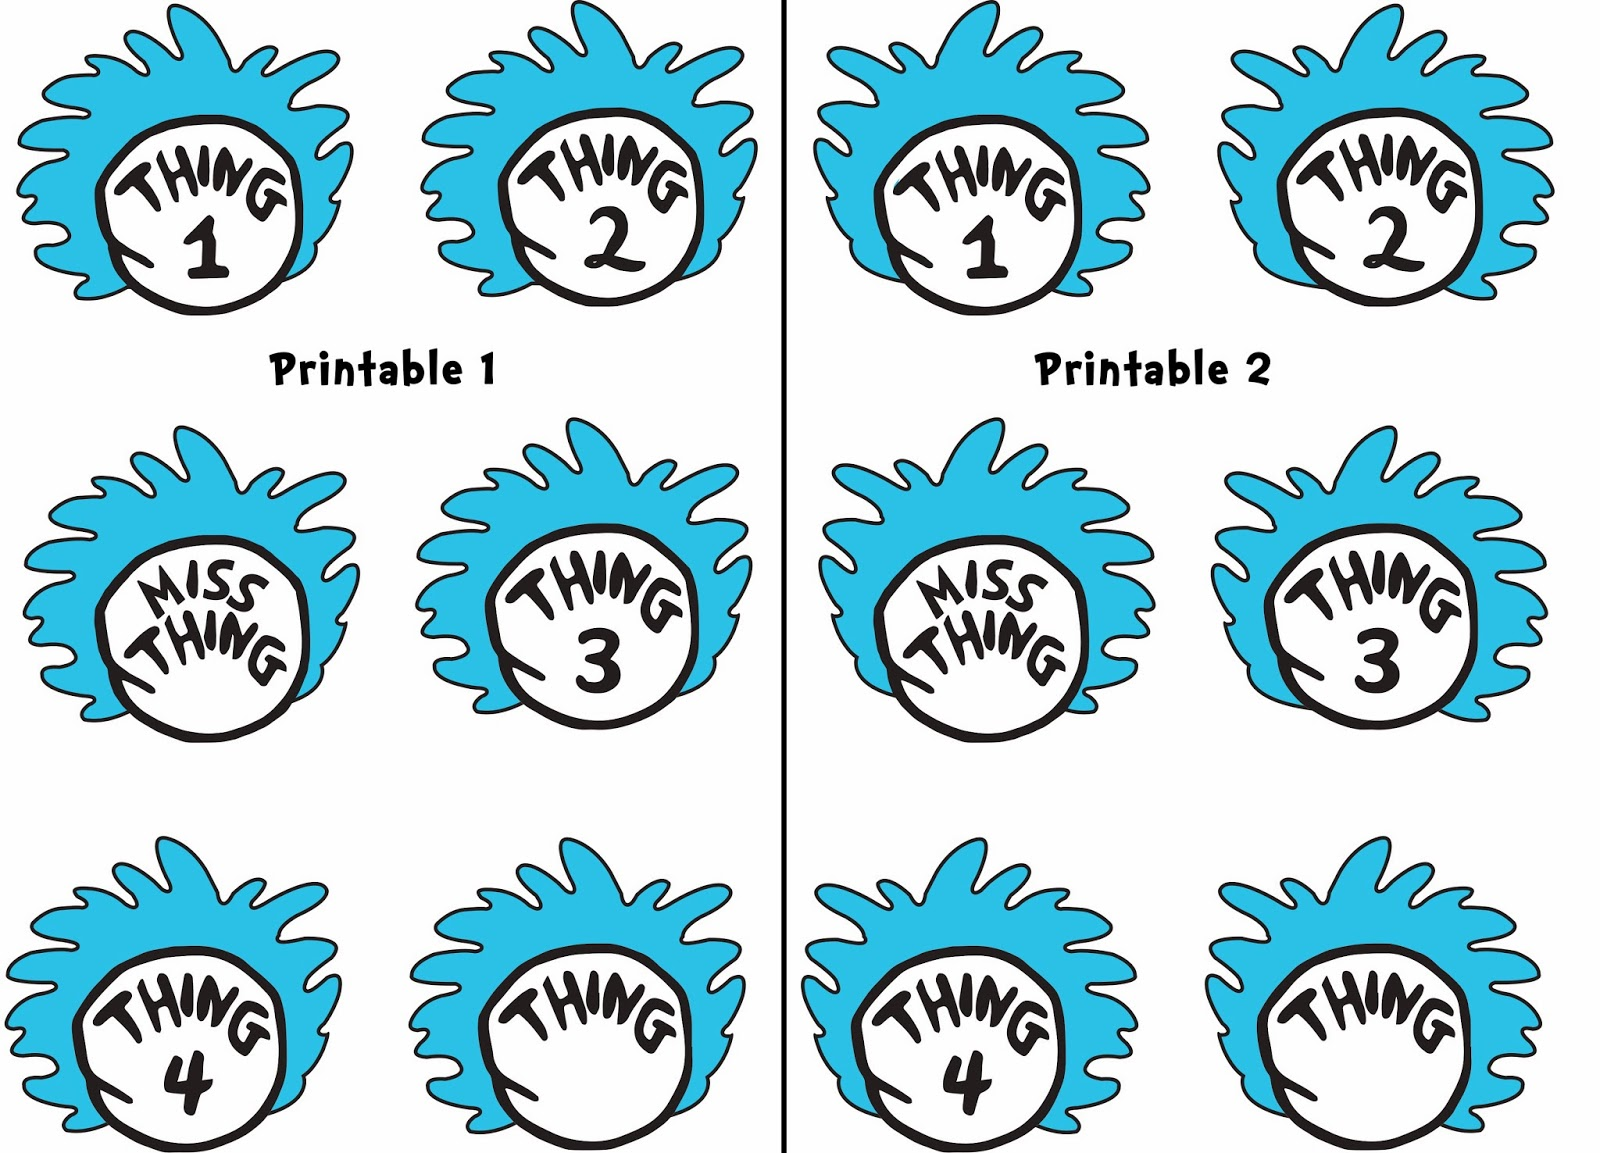 Thing 1 And Thing 2 Printable